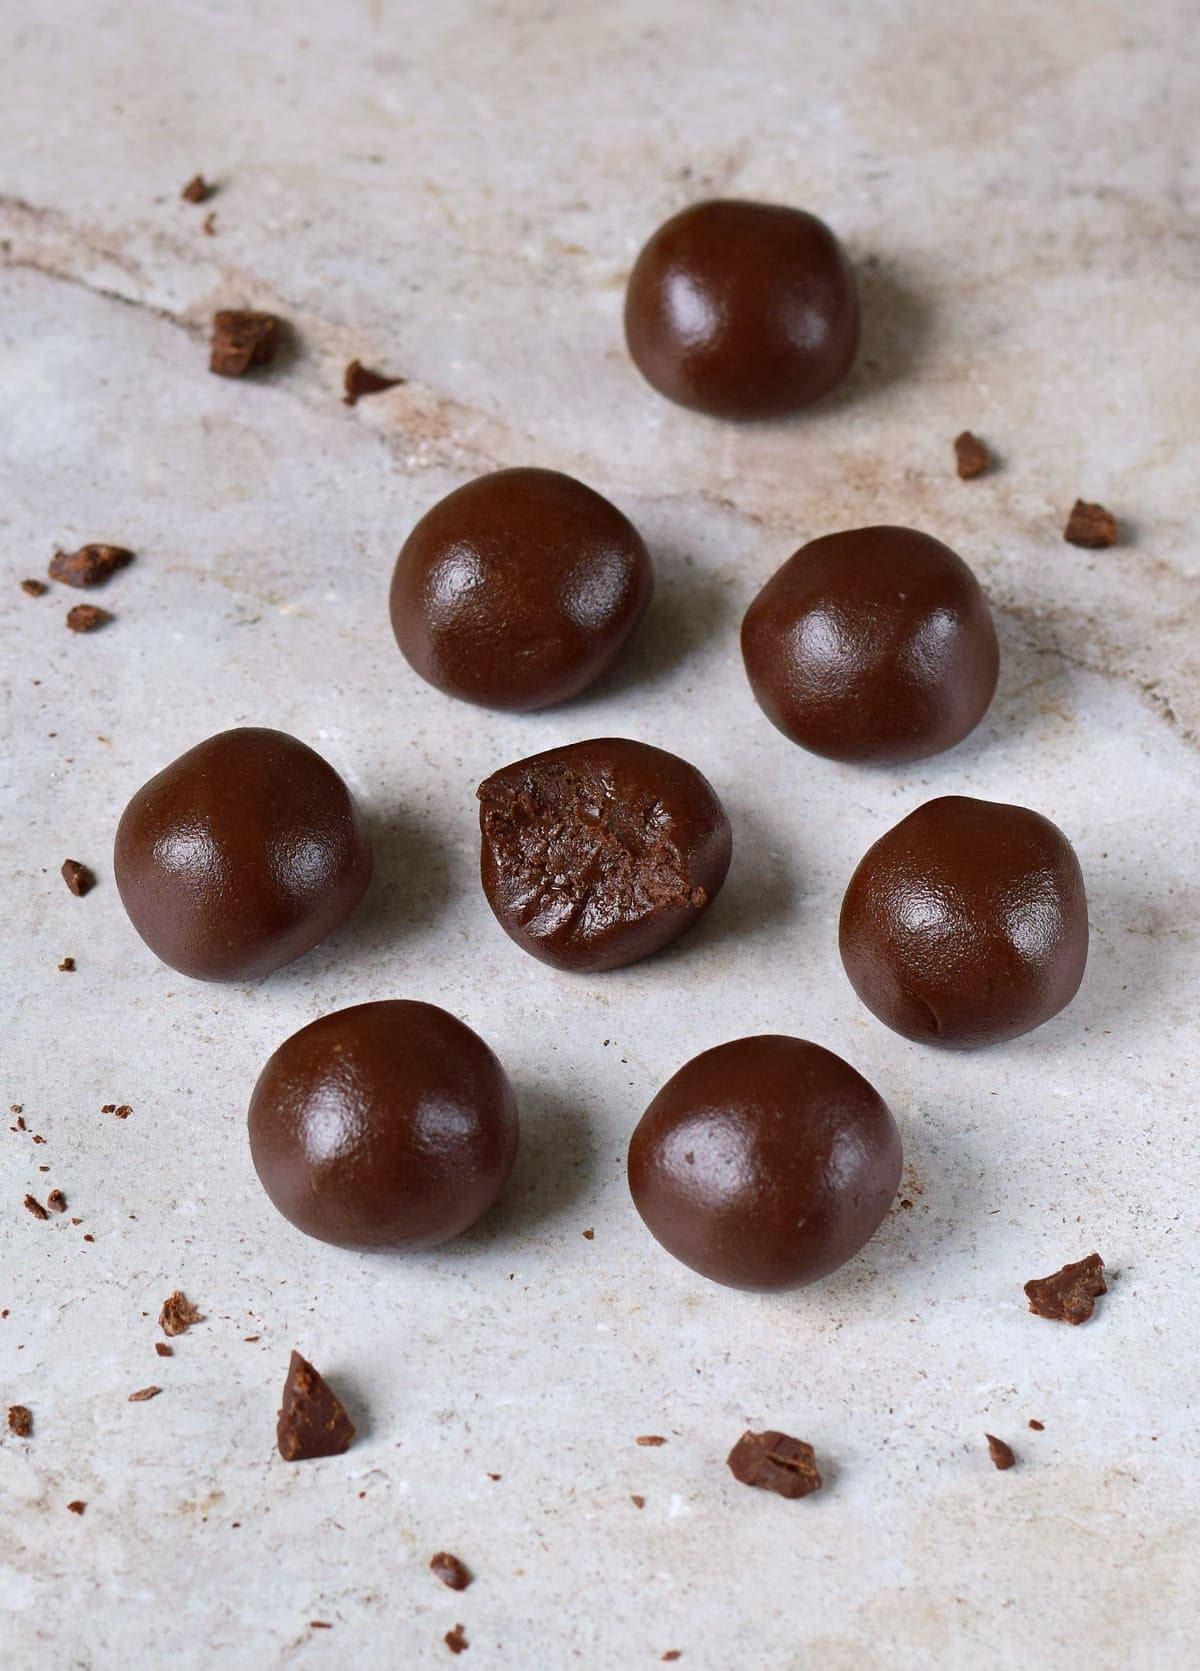 8 chocolate balls on light background